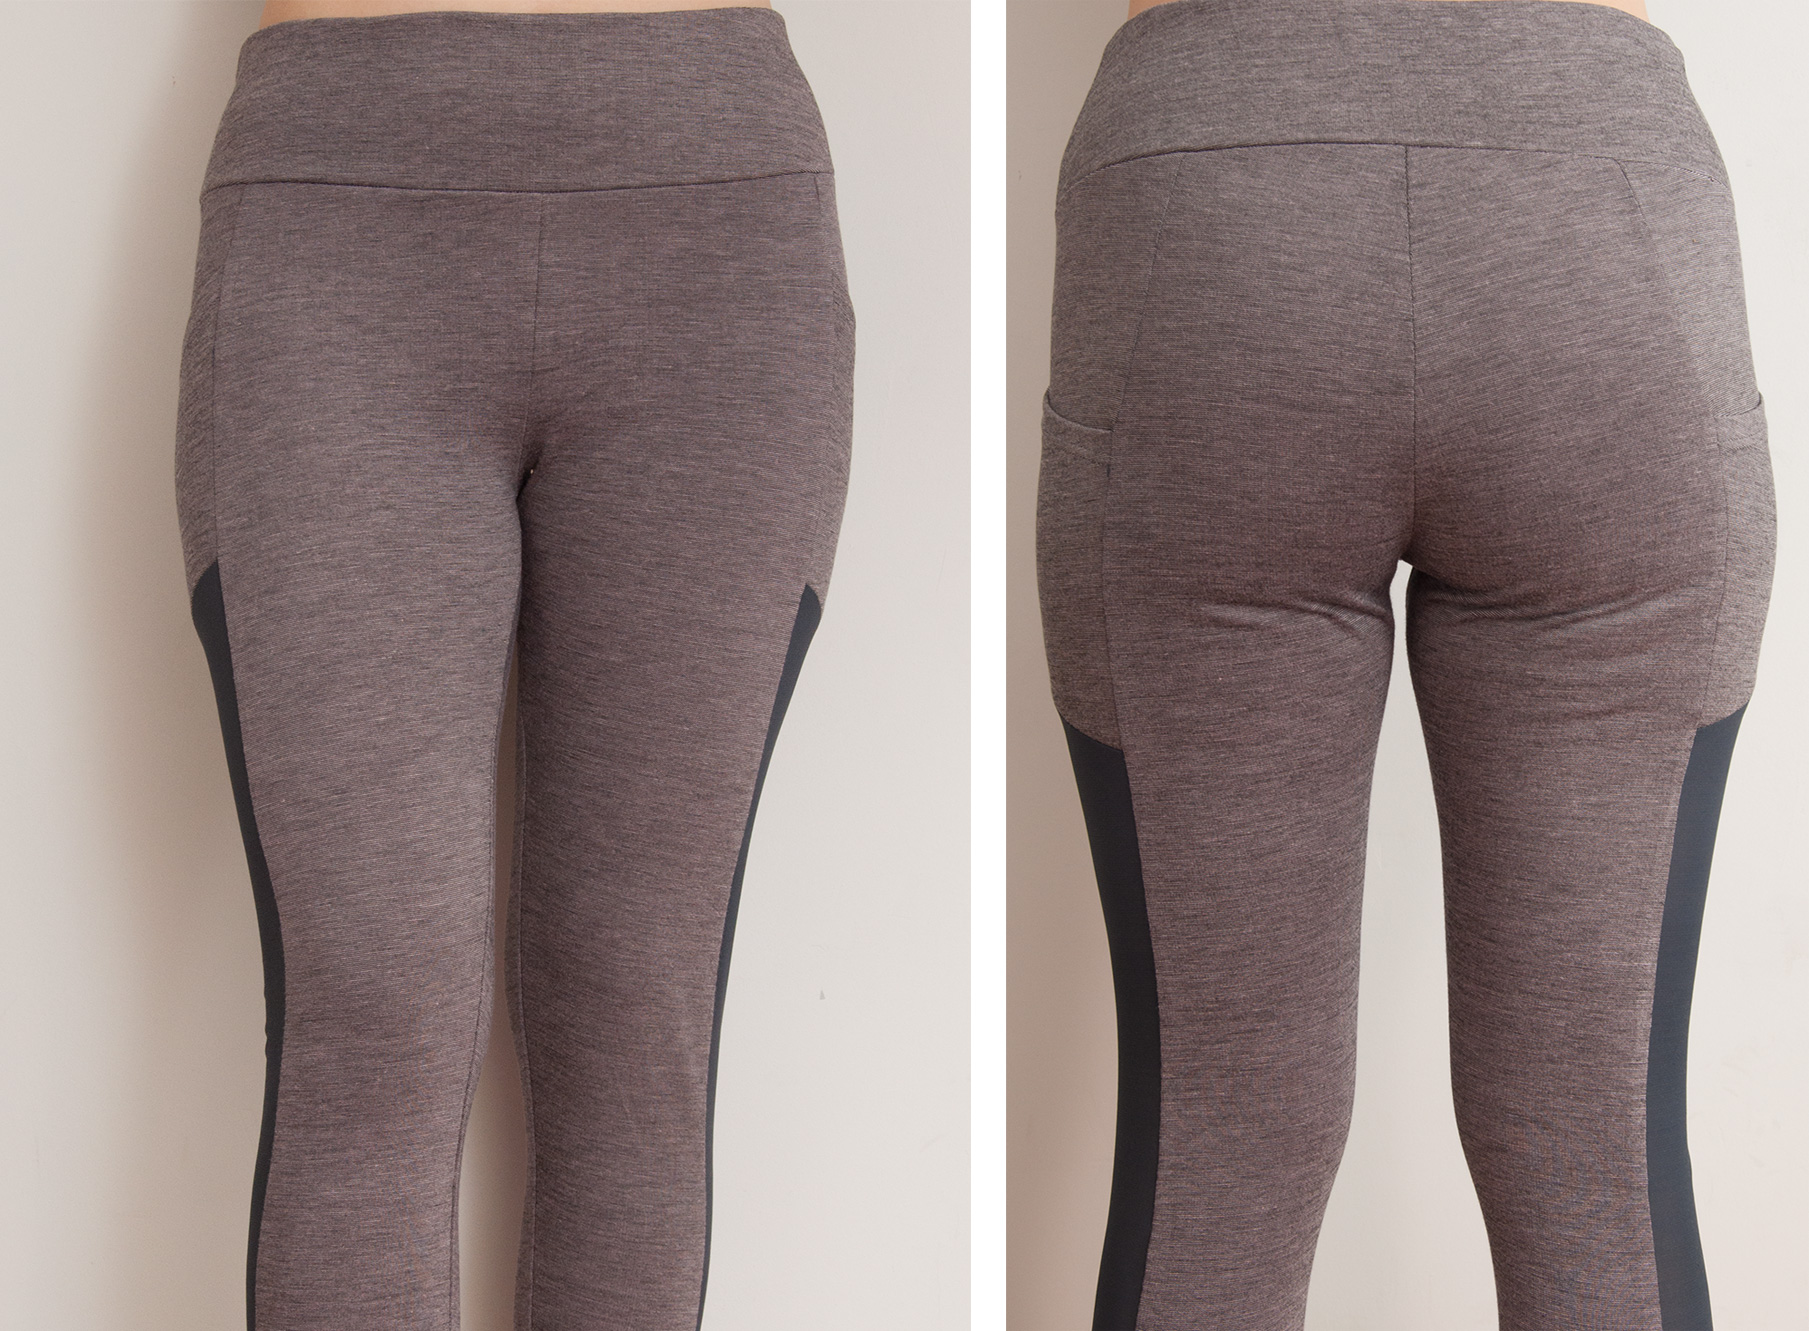 Yoga leggings with mesh insert and ties